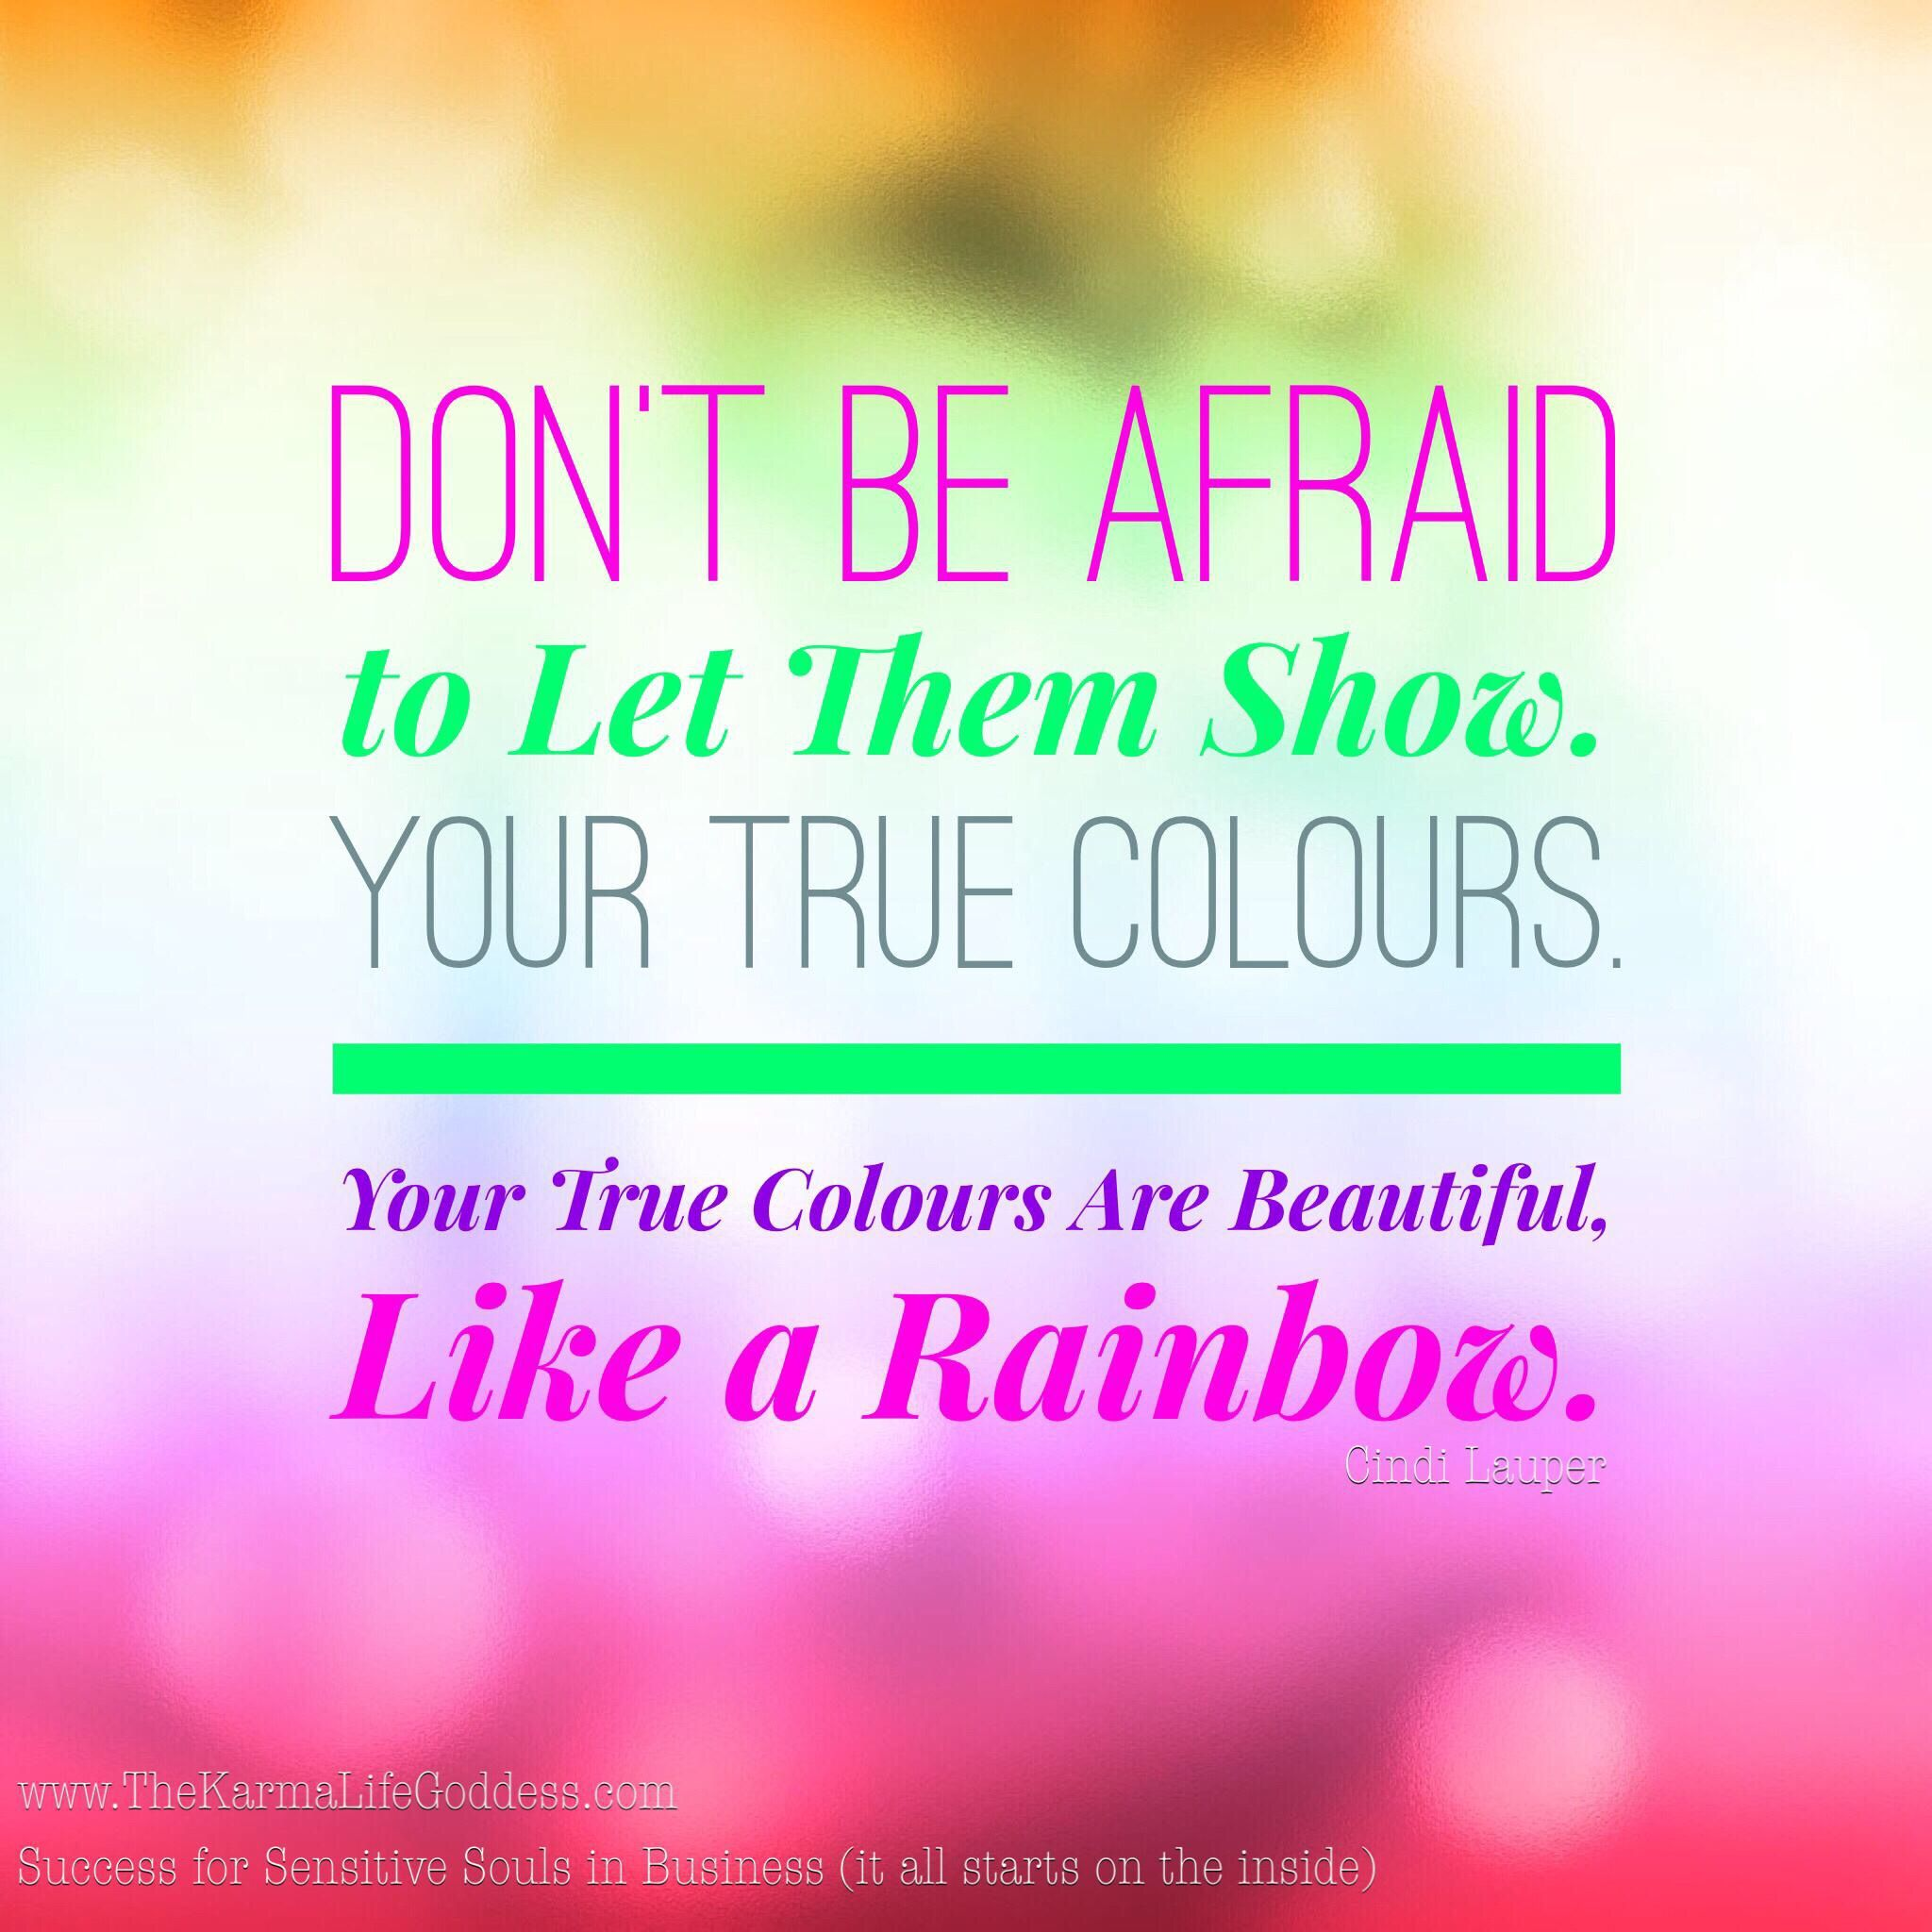 Self-Belief Saturday: Your True Colours Are Beautiful ...